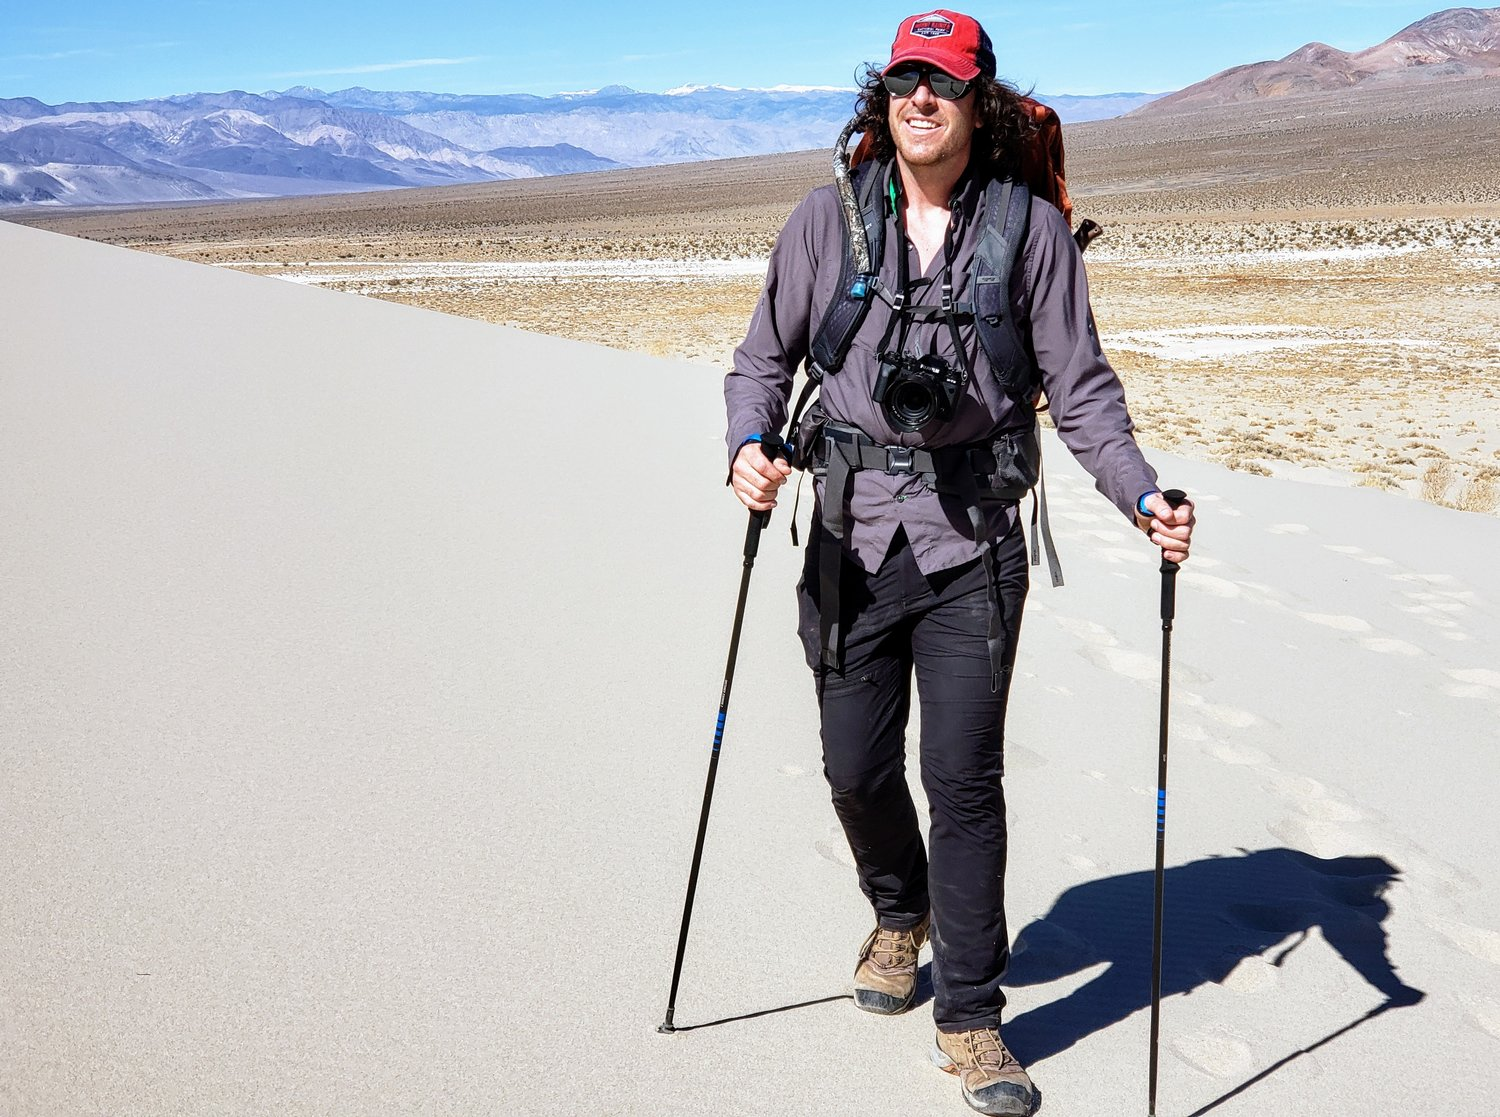 Jeff Zausch begins the ascent of Eureka Dunes, which are almost 700 feet high in a very remote area of the park.